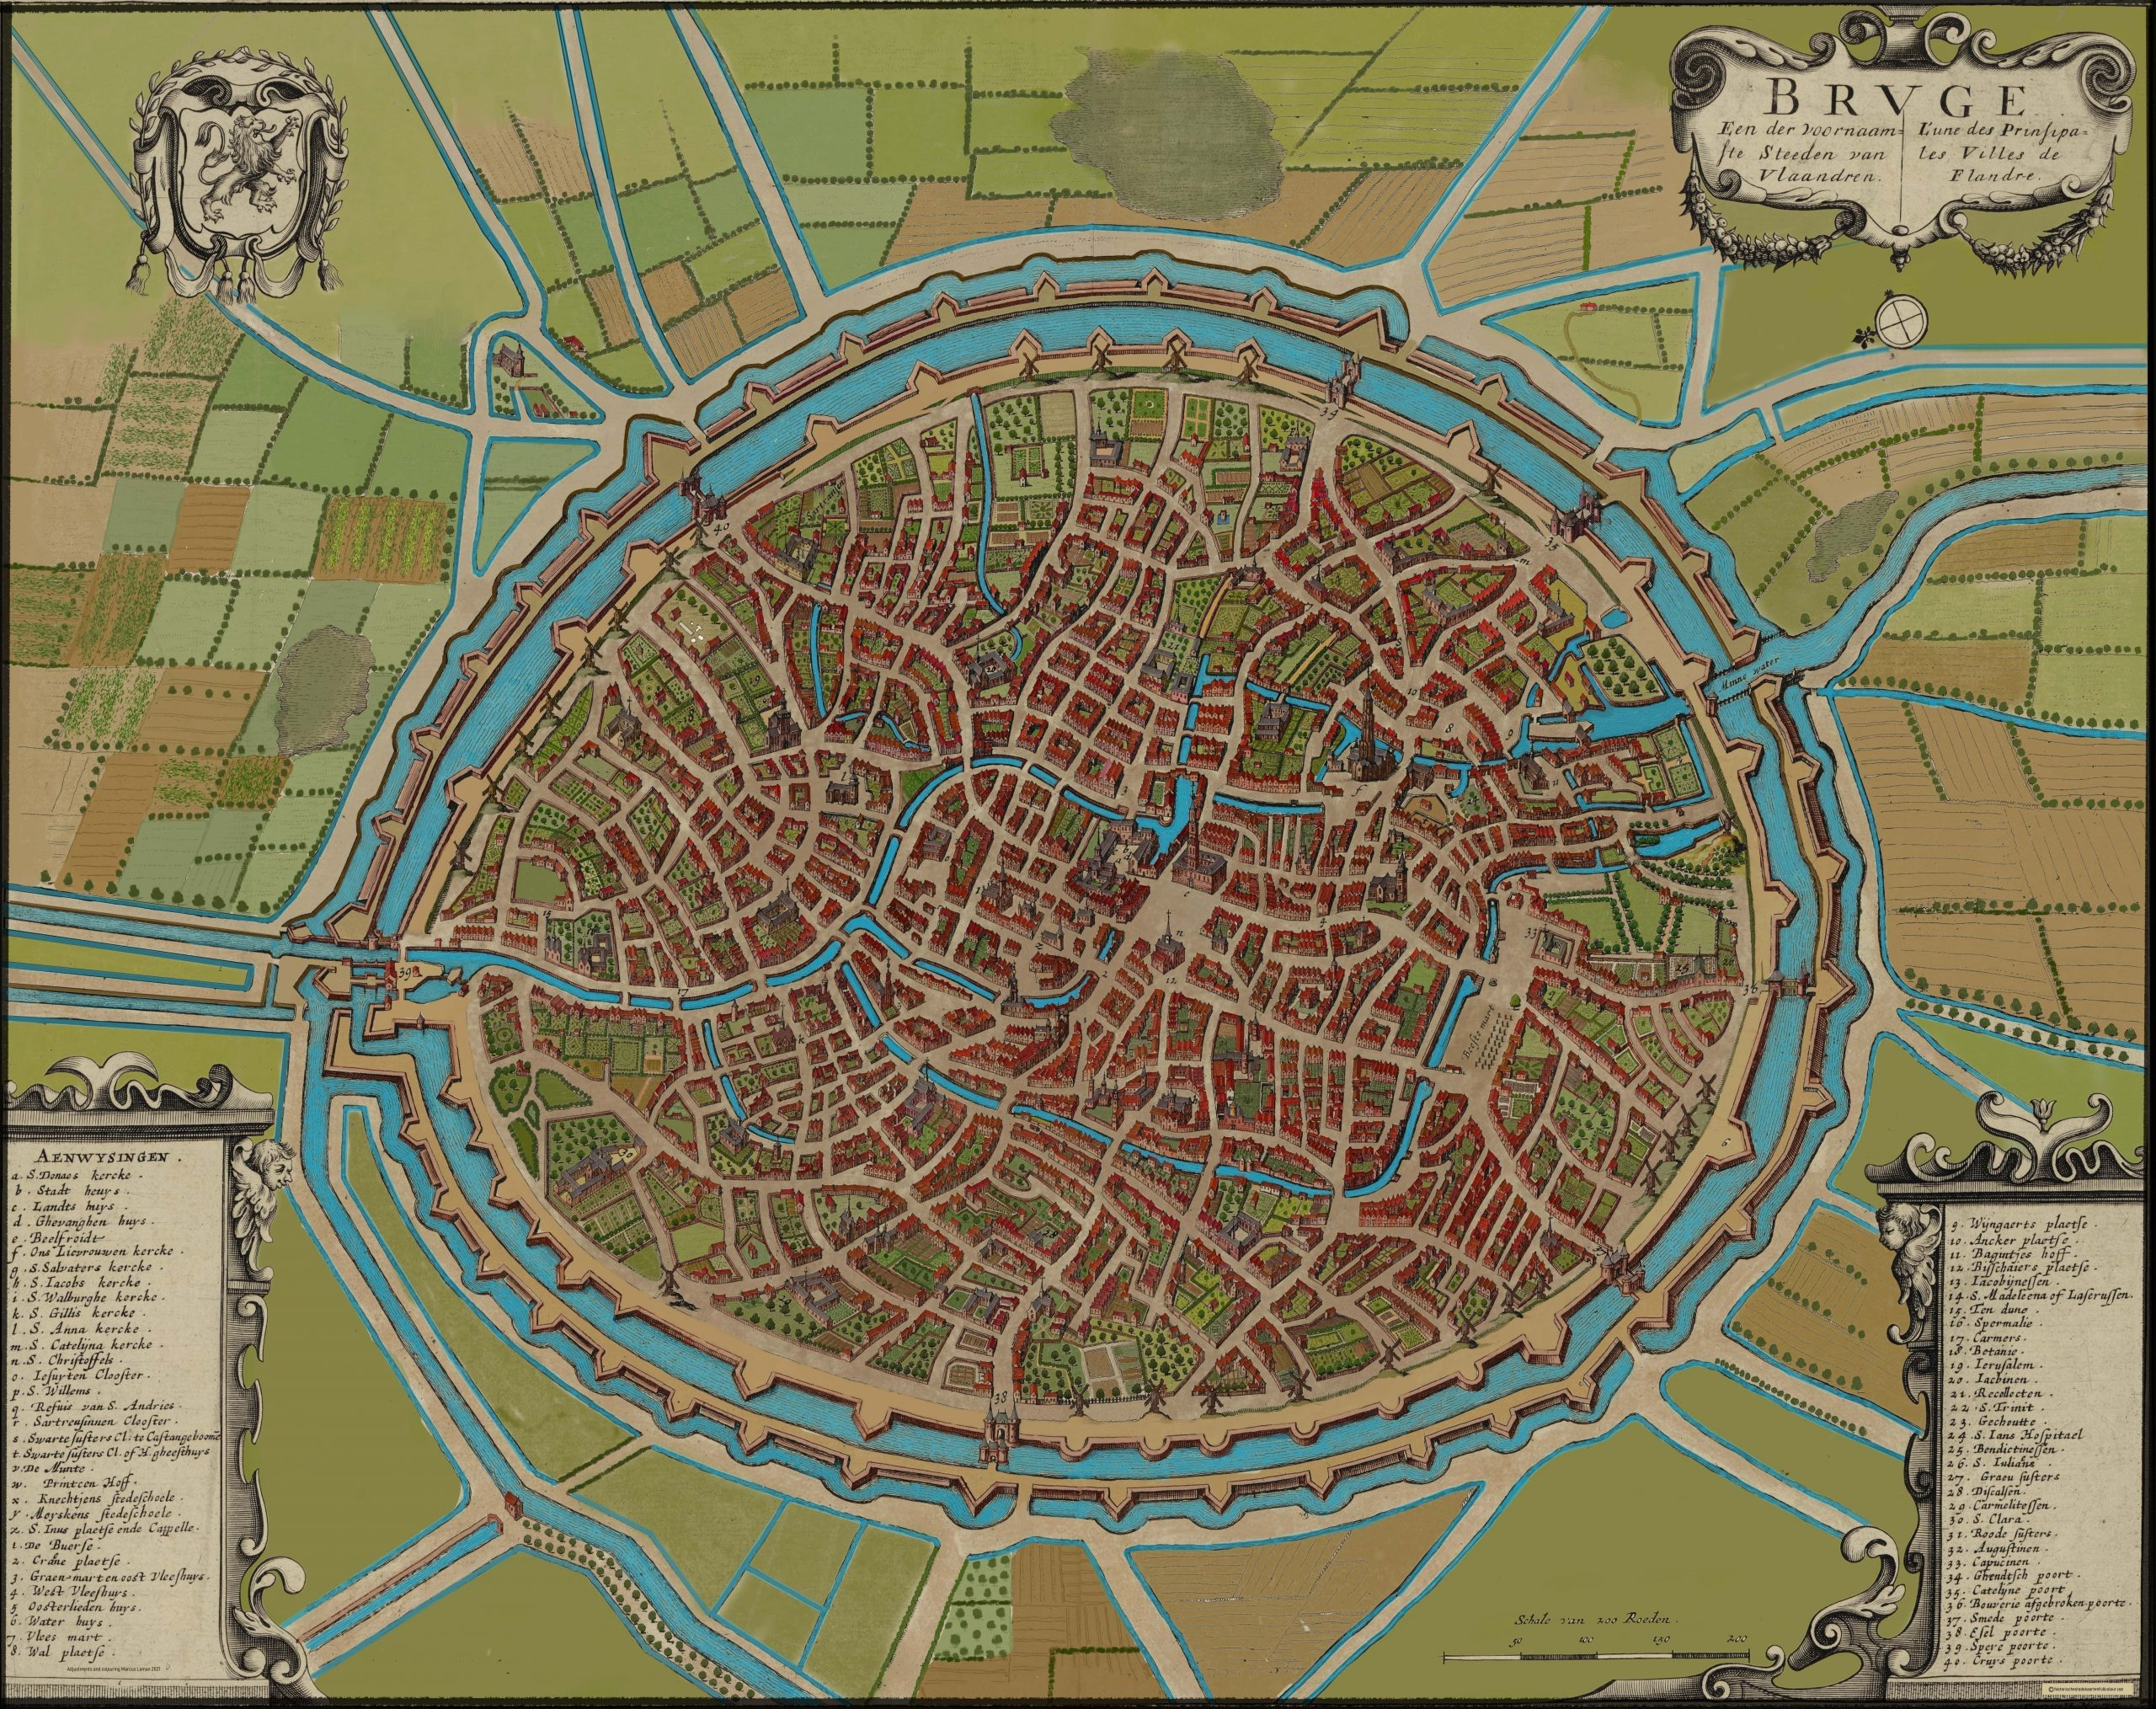 Map_of_Bruges,_17th_century DEFINITEF 050721(1)-min